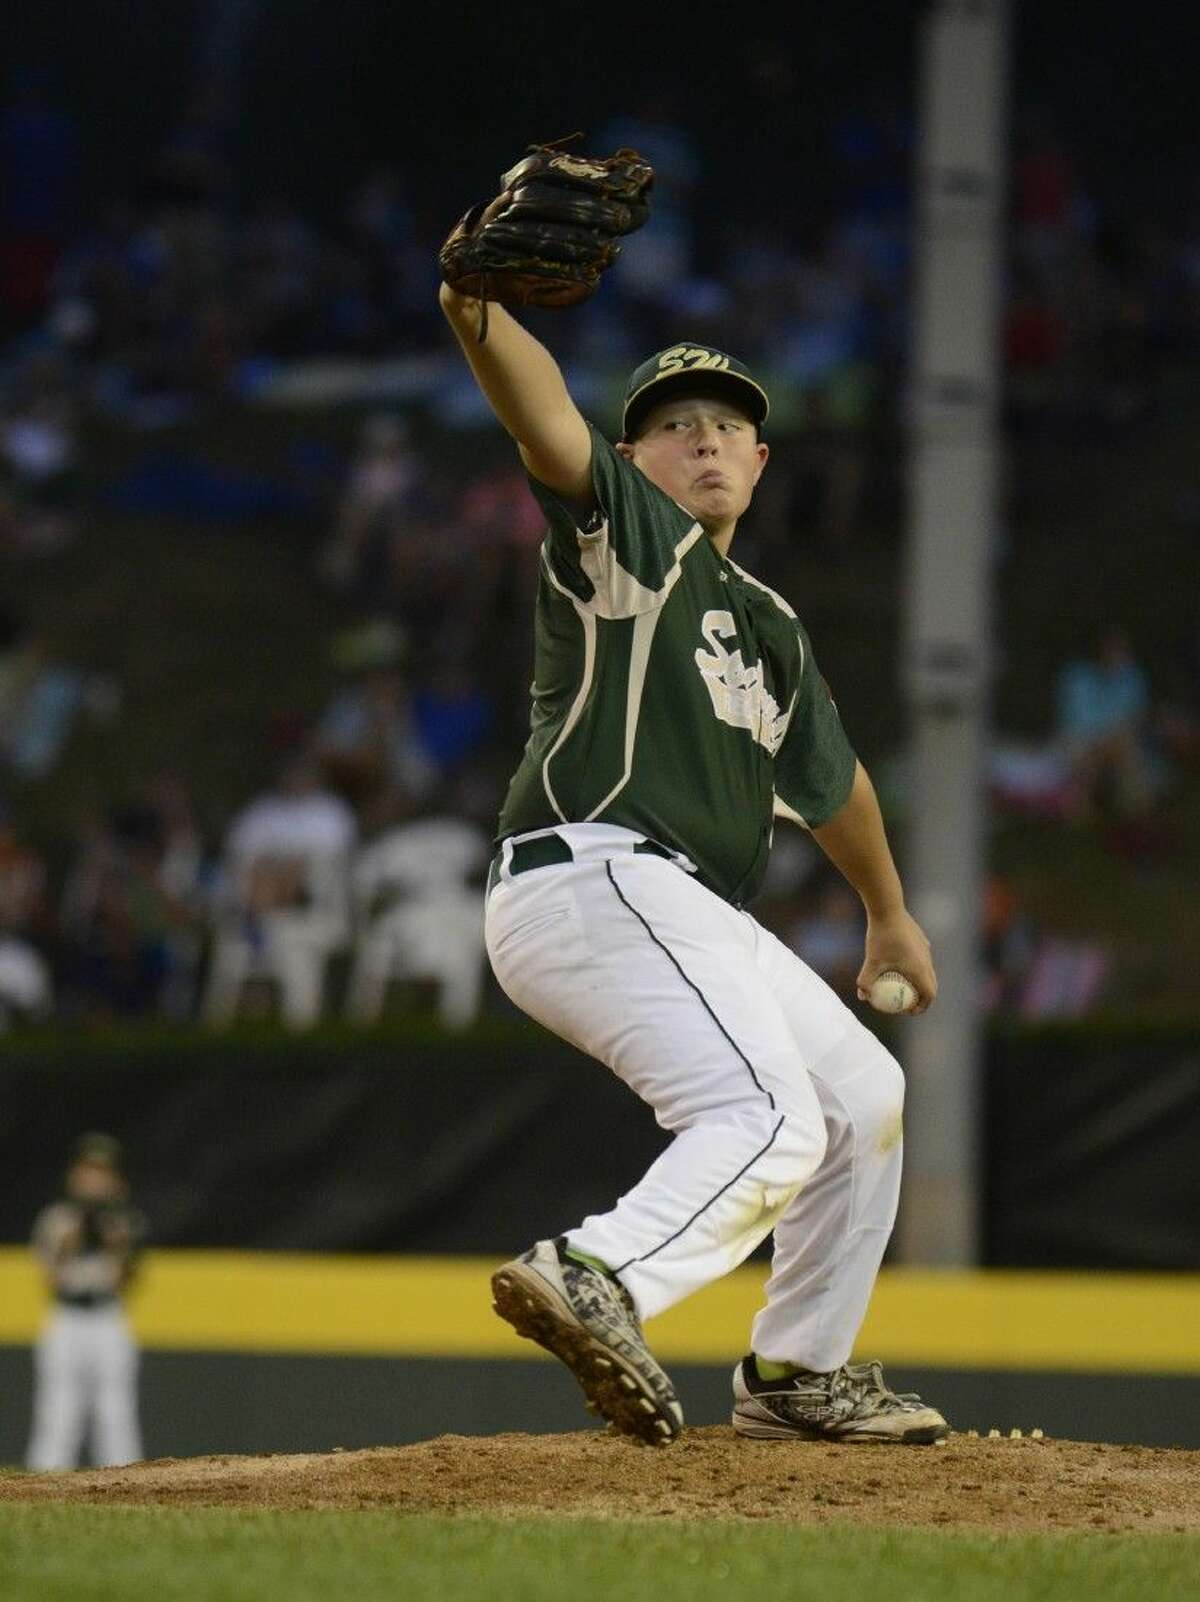 Southwest starting pitcher Walter Maeker III (21) in Tuesday's Little League World Series game in Williamsport, Pa. on August 19, 2014. (Ralph Wilson)